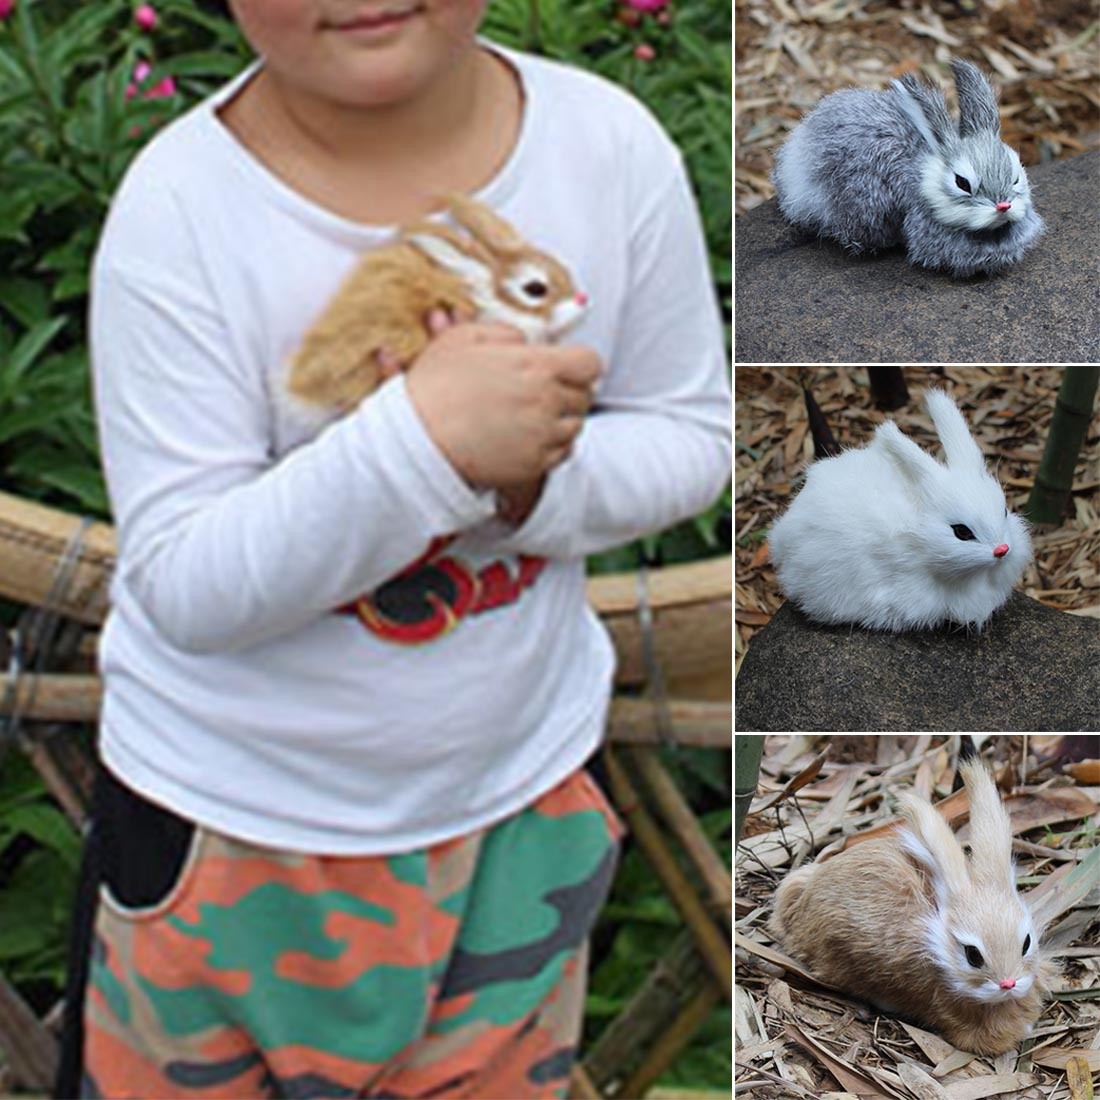 Kids Toys Decorations Birthday Gift Simulation mini pocket toy Cute Artificial Animal Small Rabbit Plush Toys With a frame in Stuffed Plush Animals from Toys Hobbies